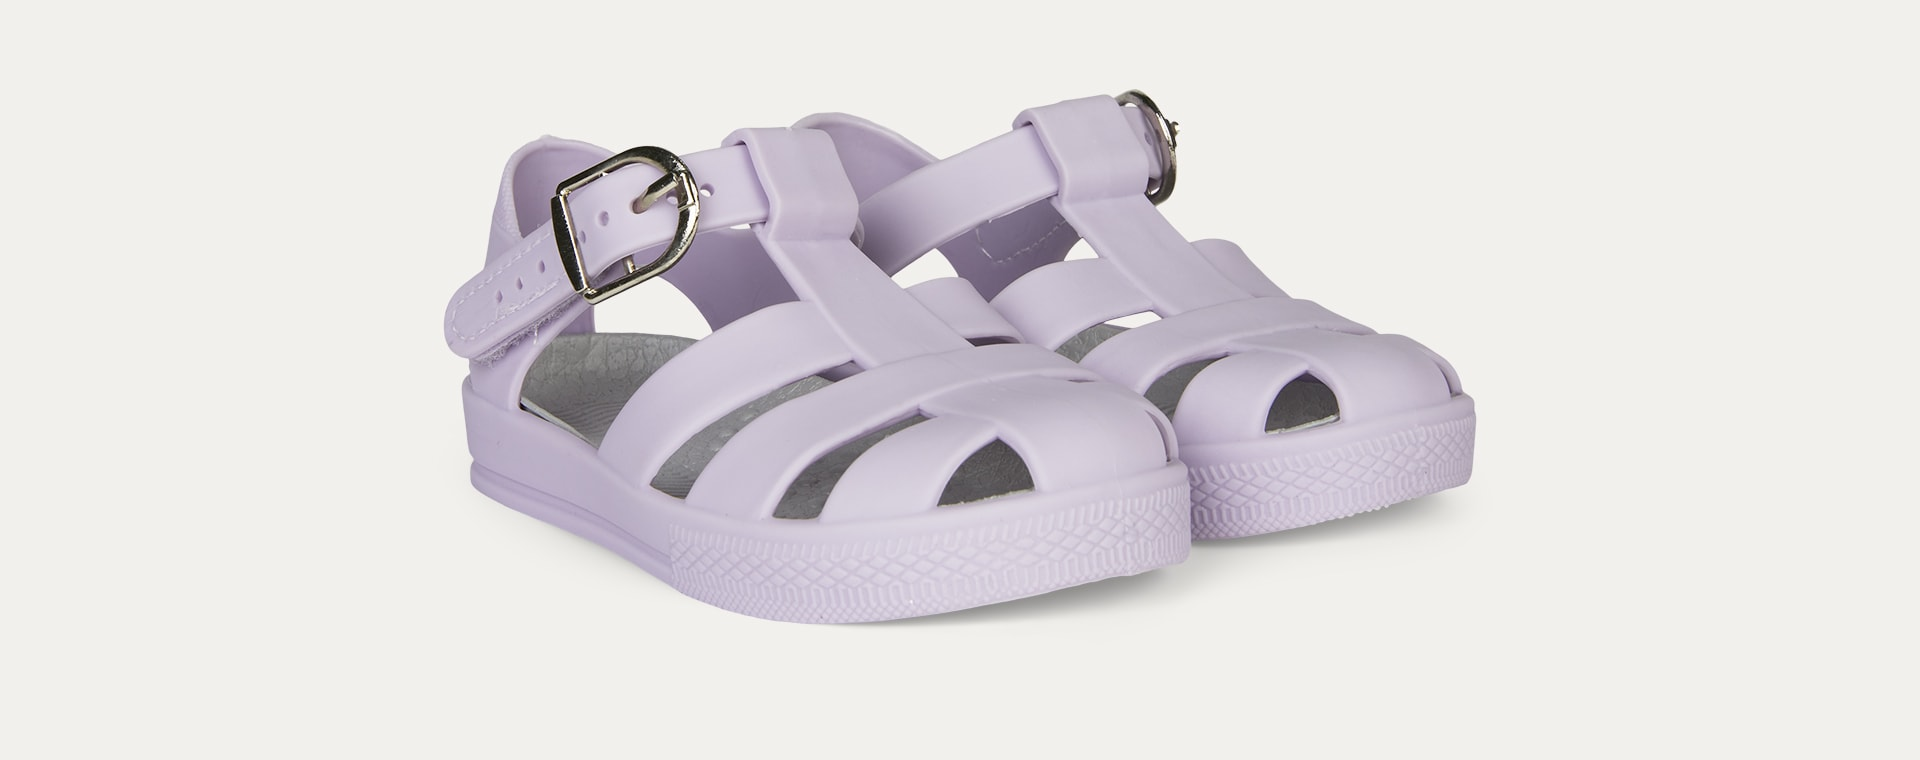 Orchid KIDLY Label Jelly Sandal